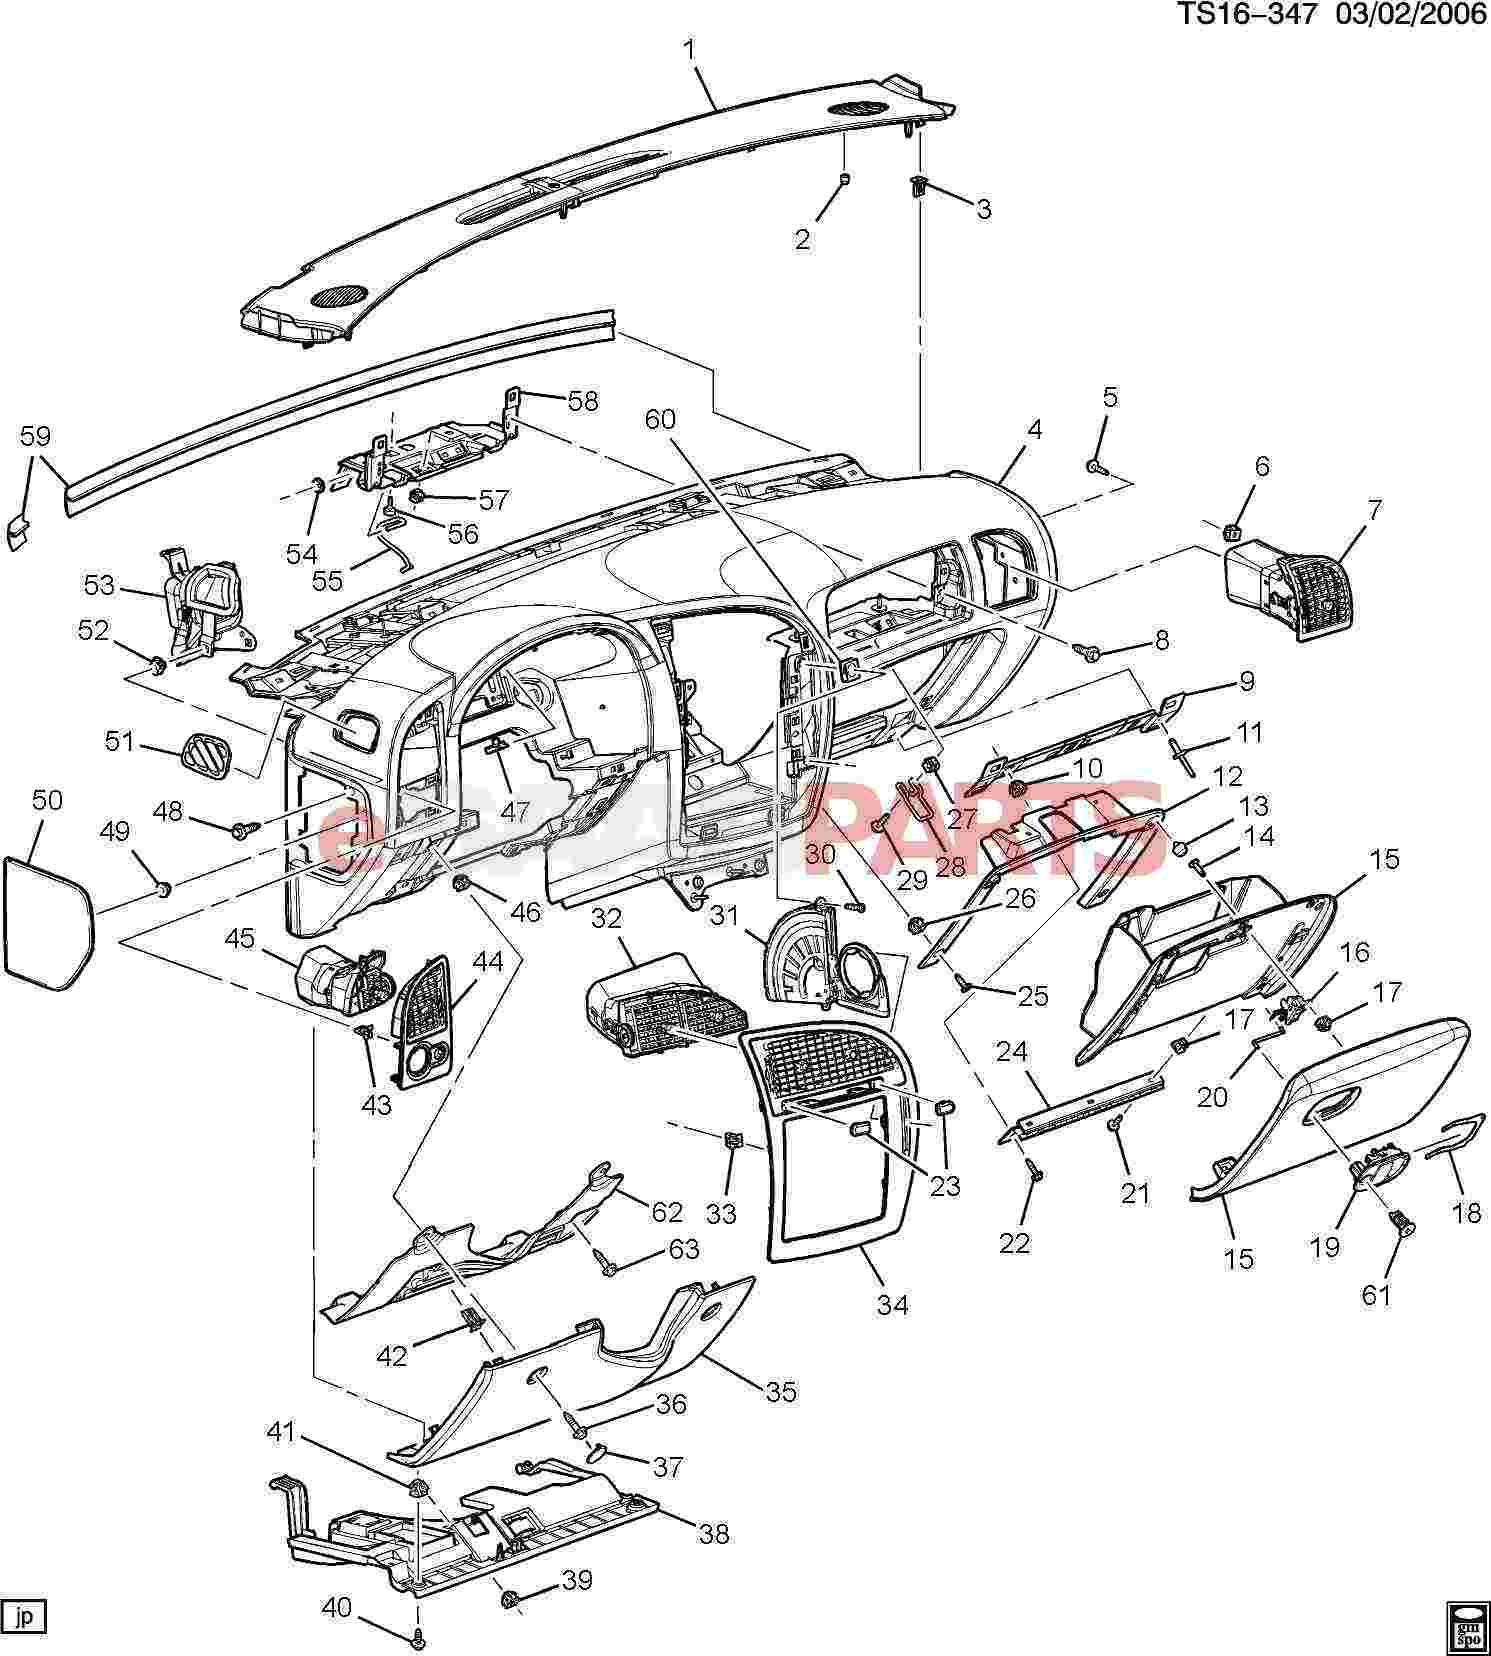 saab xwd wiring diagram vw wiring diagrams wiring diagram